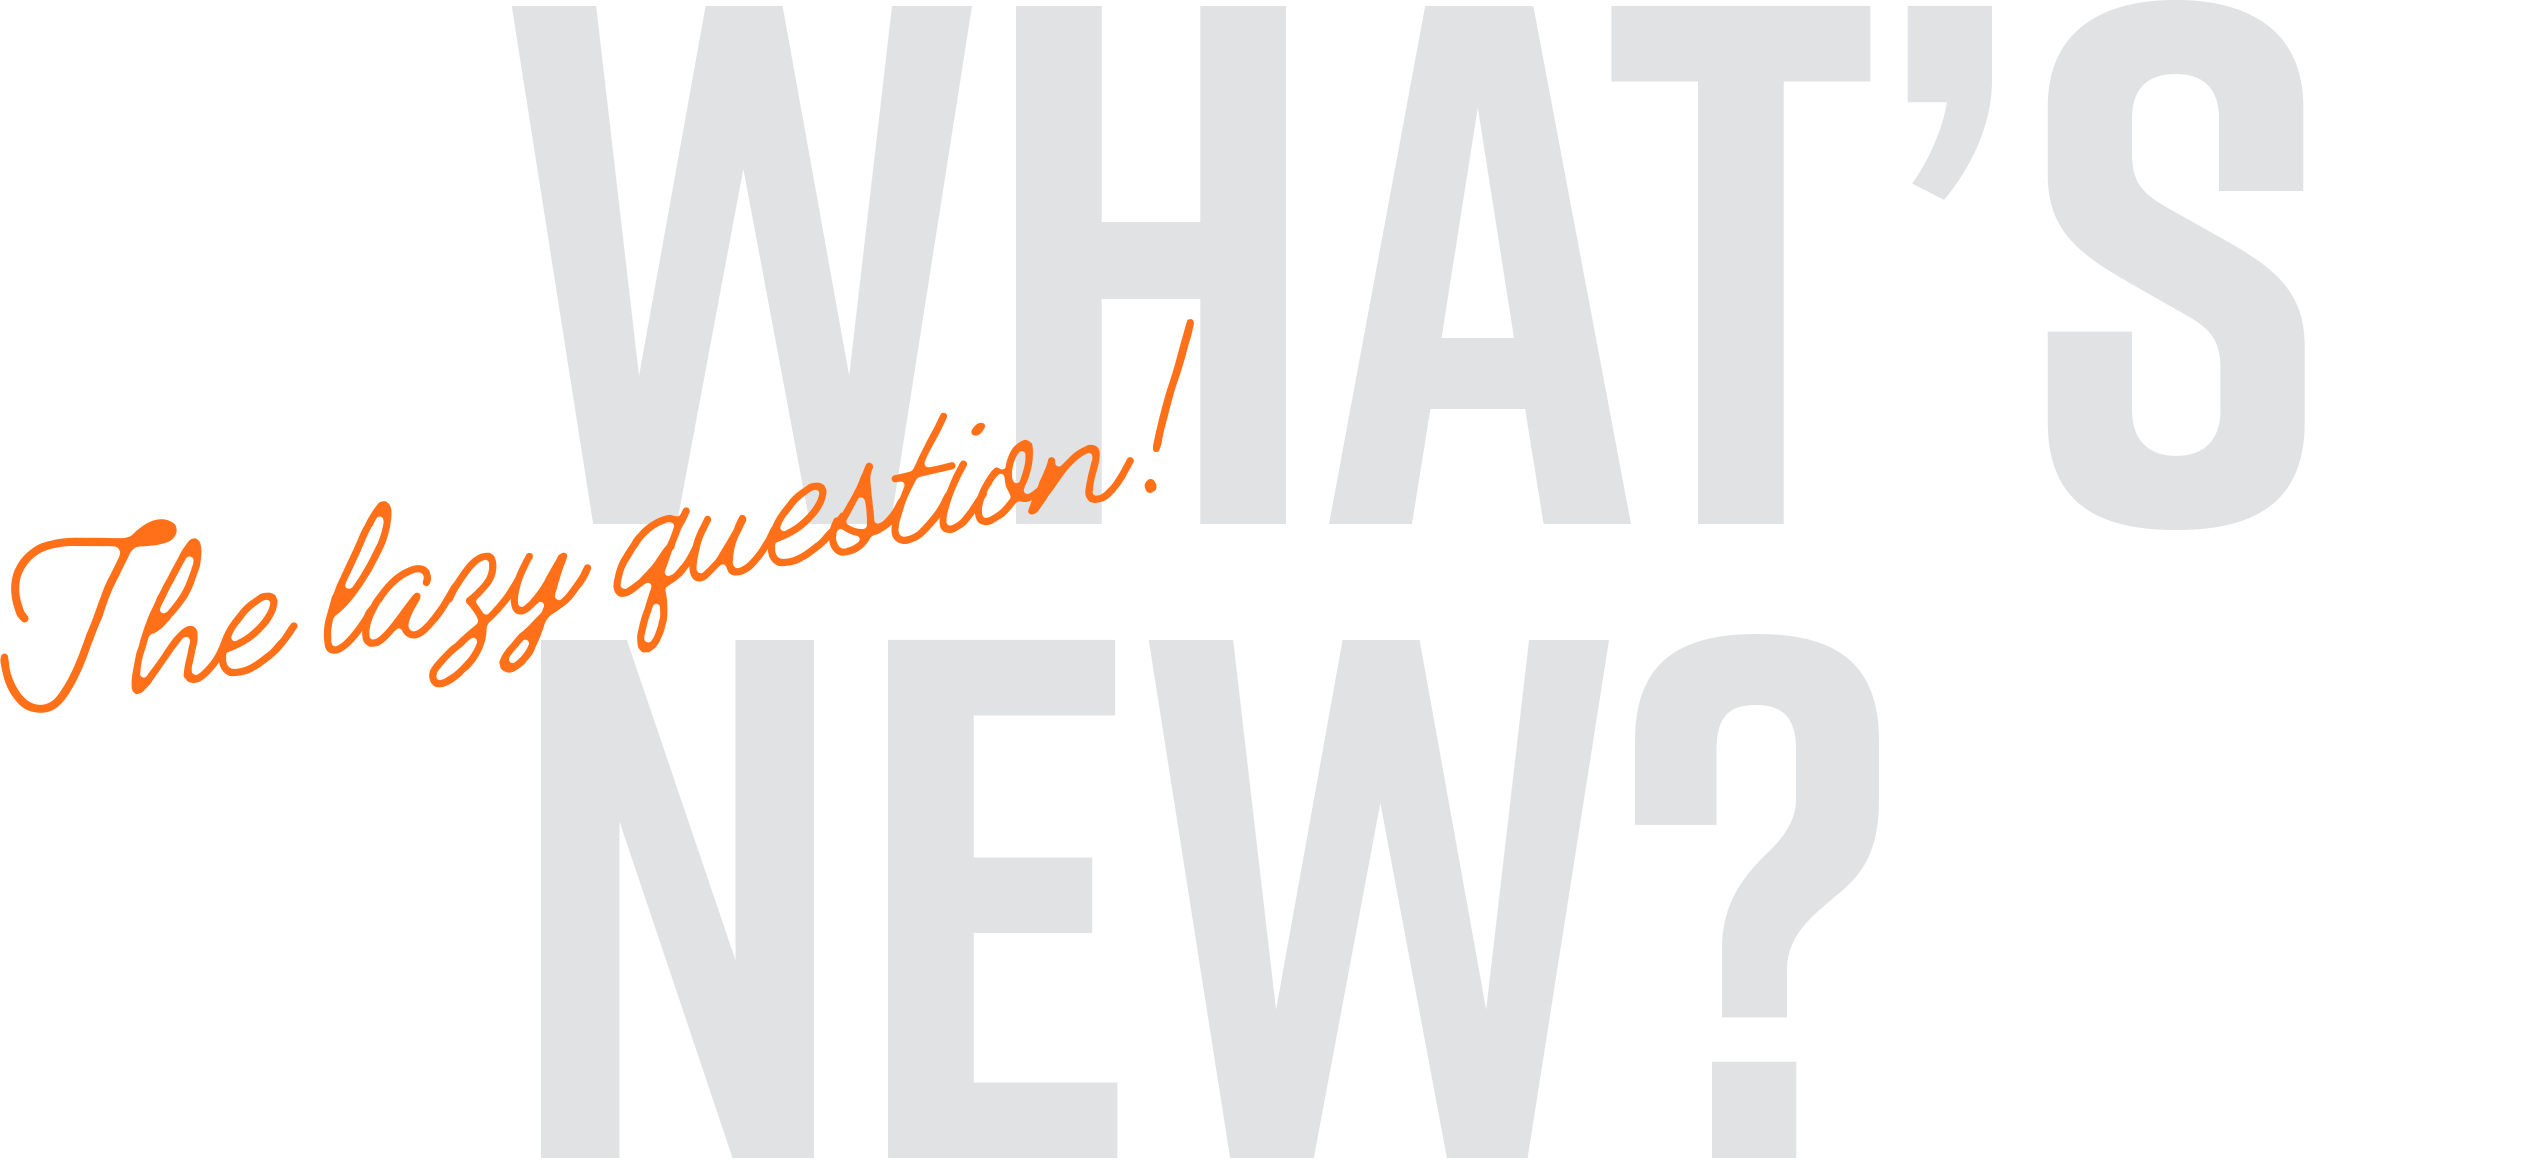 What's New? The lazy question!